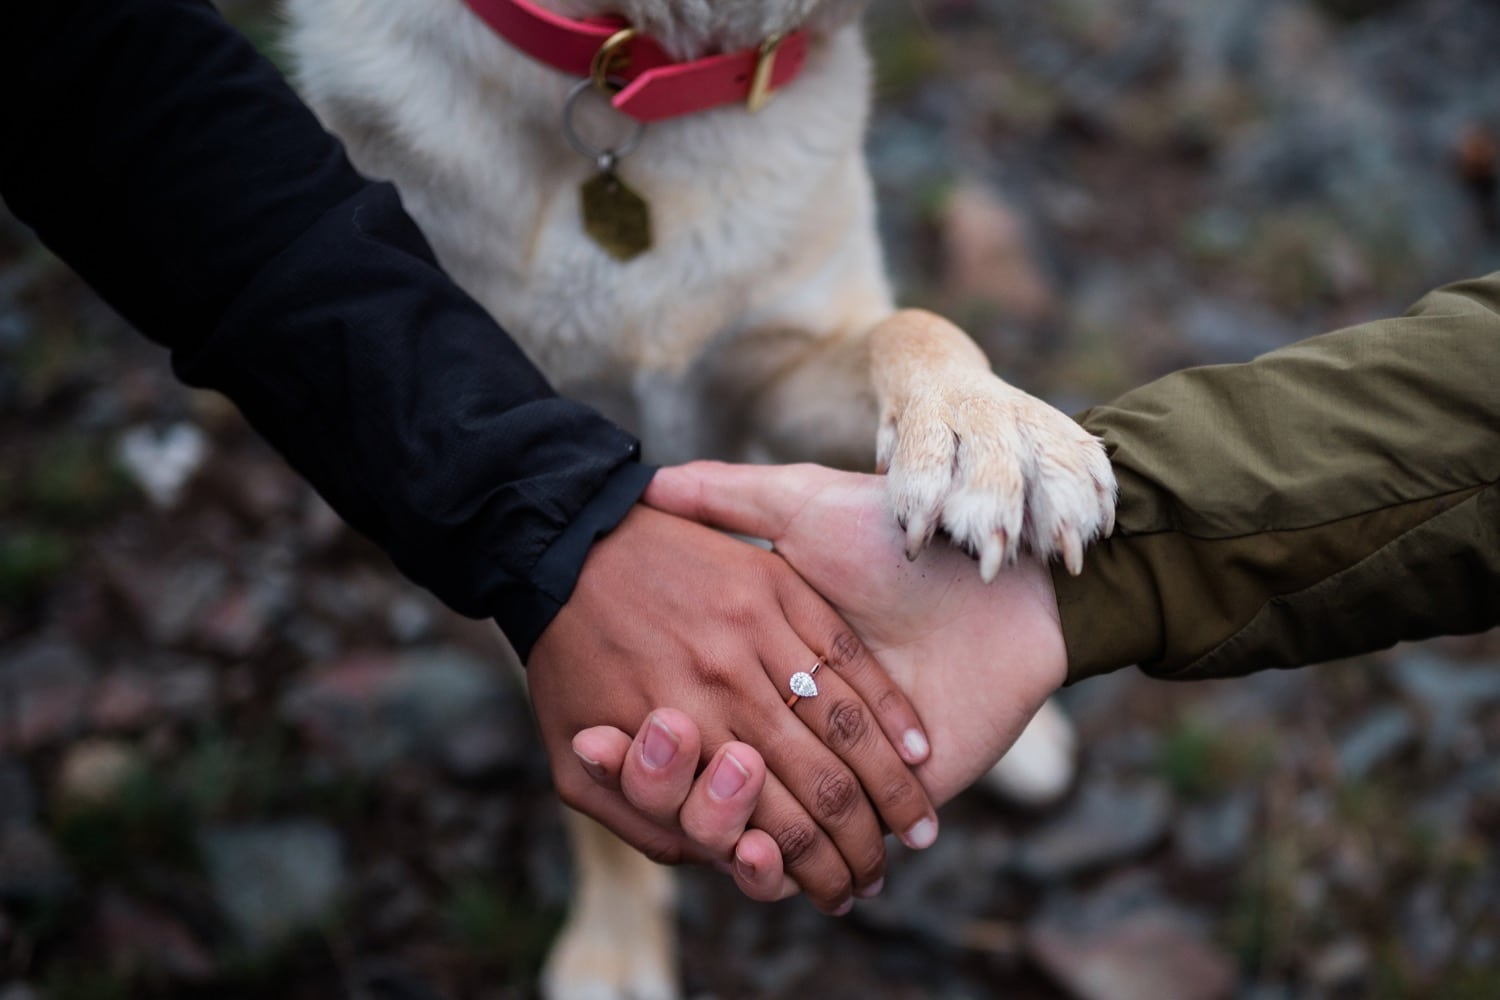 A couple hold hands, showing off the new engagement ring, and their dog puts her paw on top of their hands.